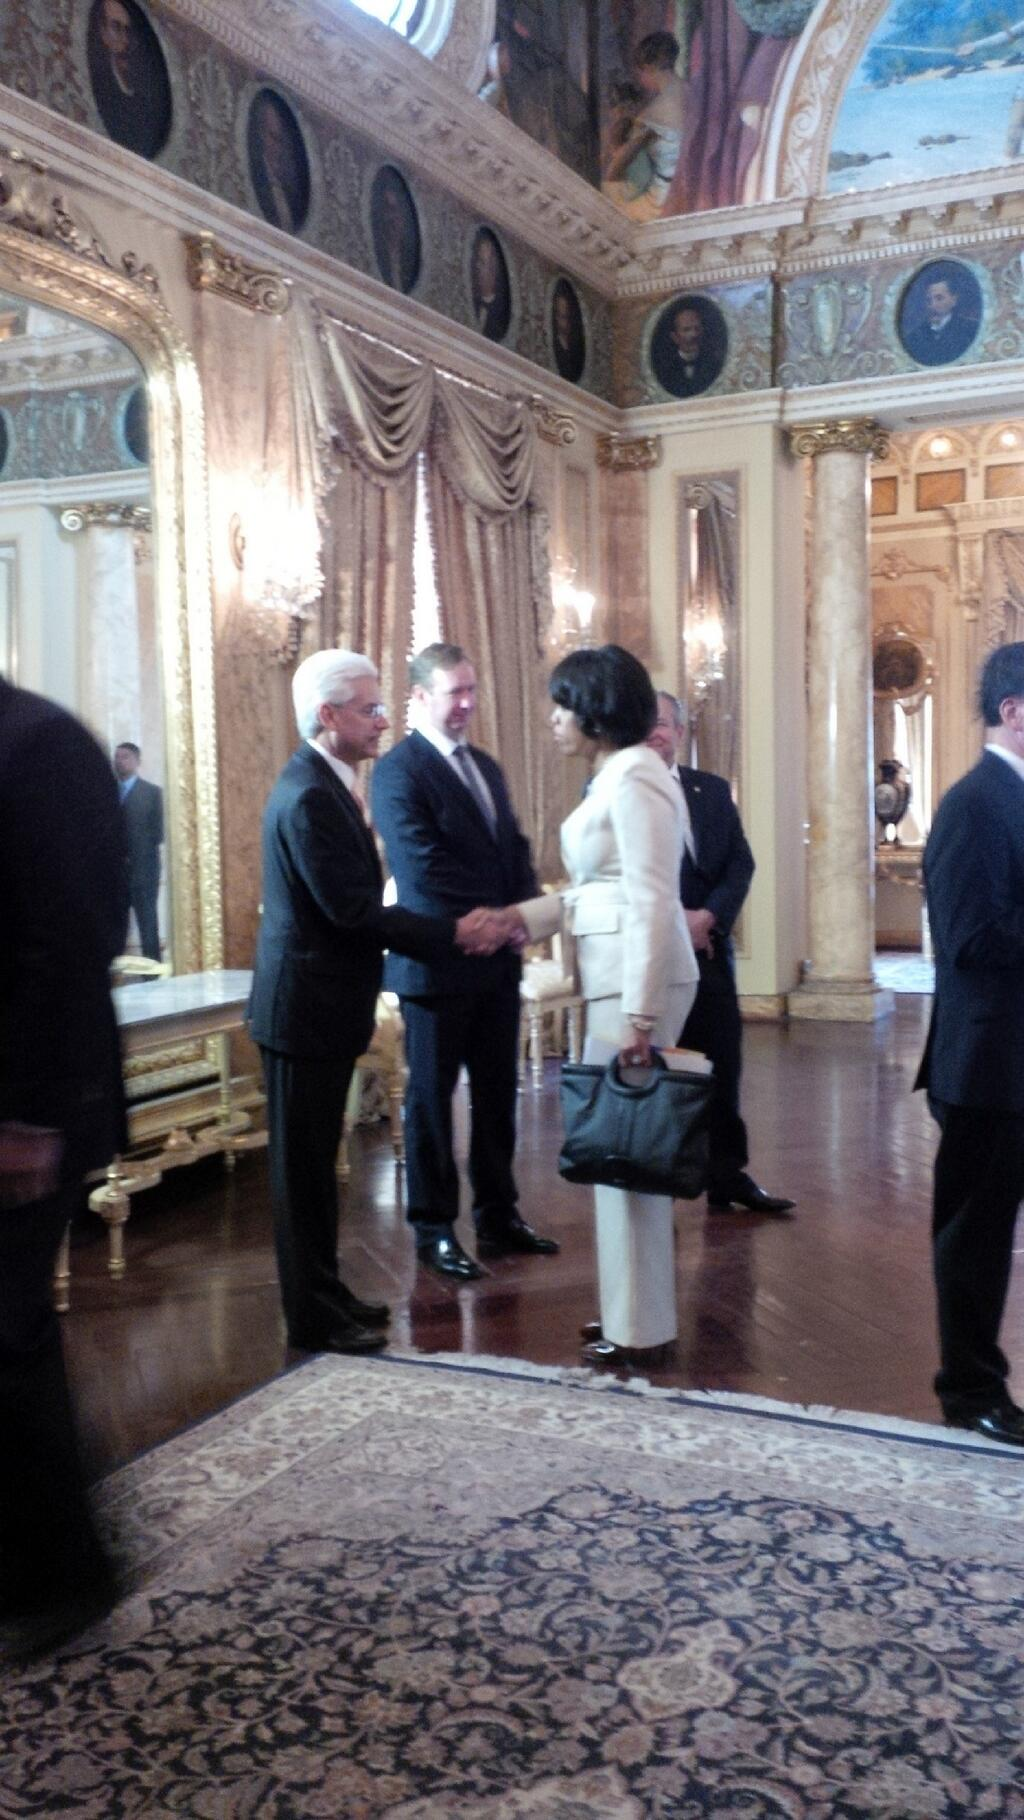 Mayor Stephanie Rawlings-Blake at the presidential palace. (@MayorSRB Twitter)